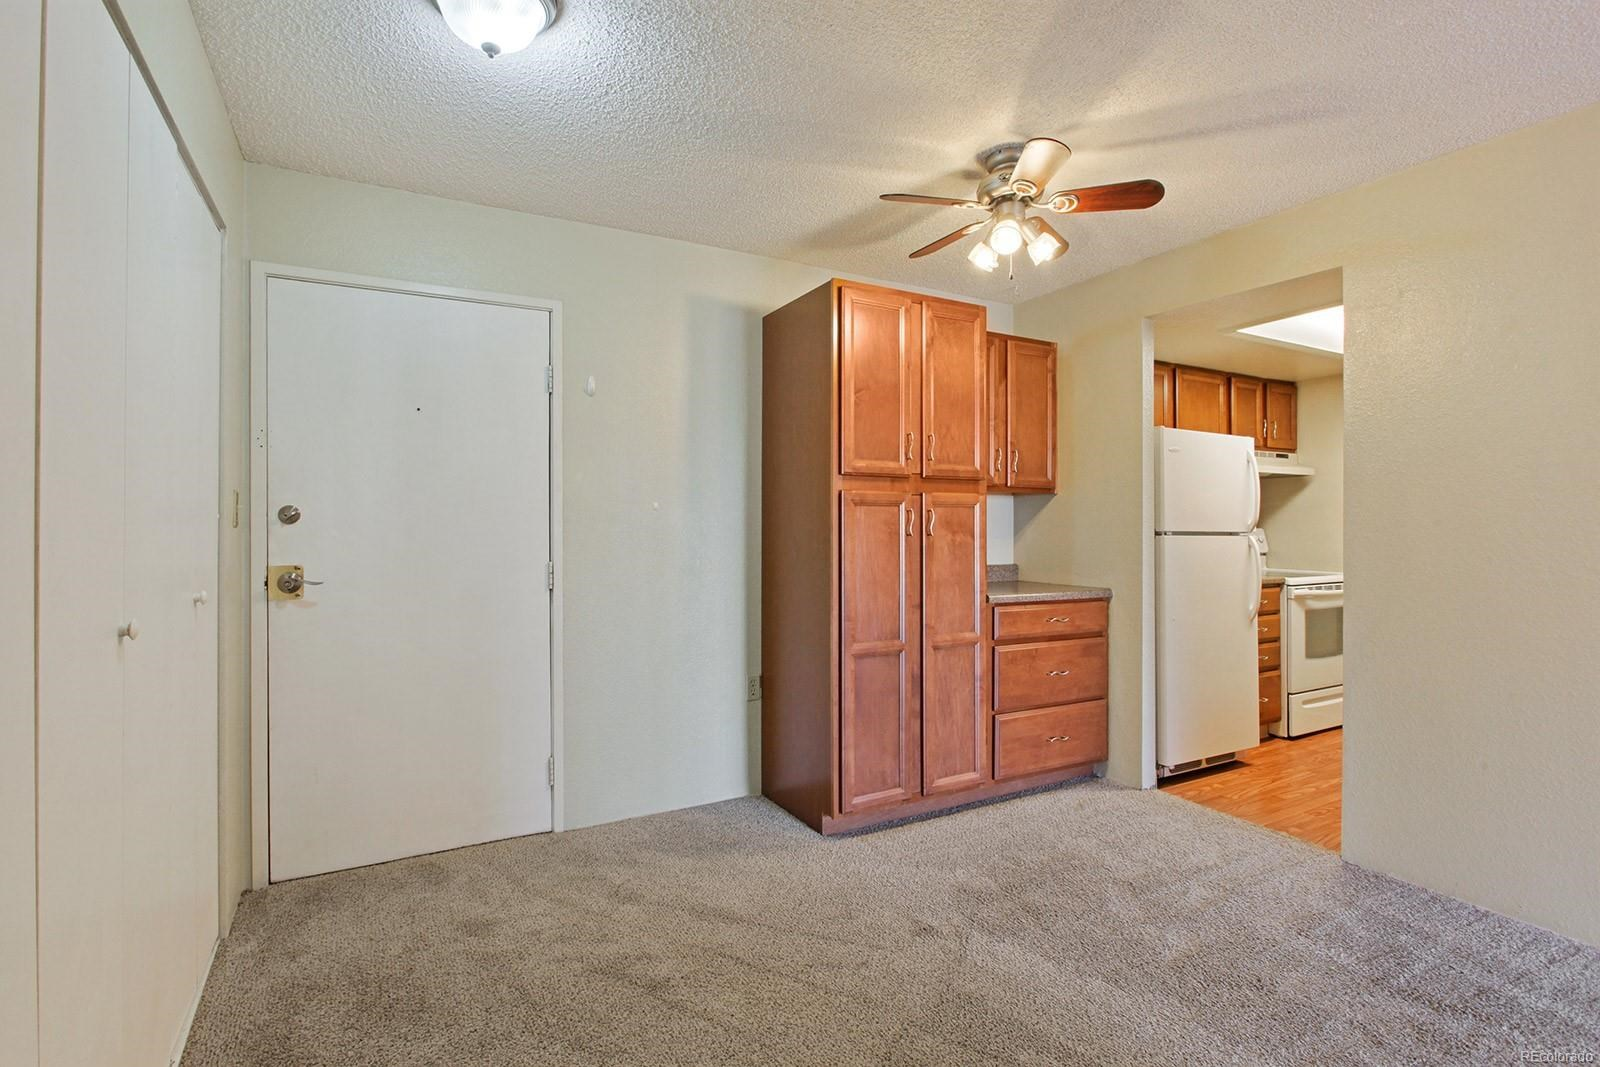 MLS# 3830405 - 3 - 1150 Golden Circle #403, Golden, CO 80401